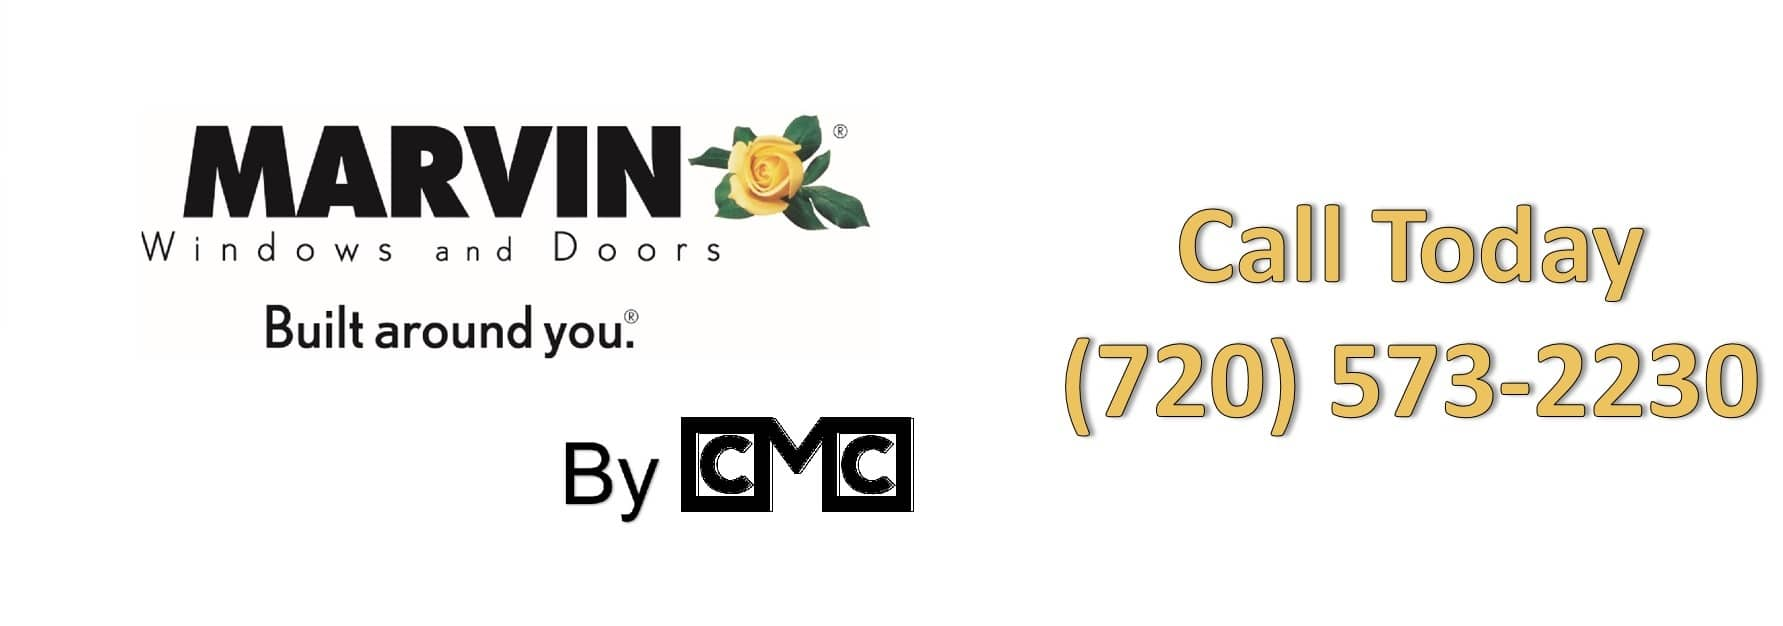 Marvin Windows and Doors by CMC Logo